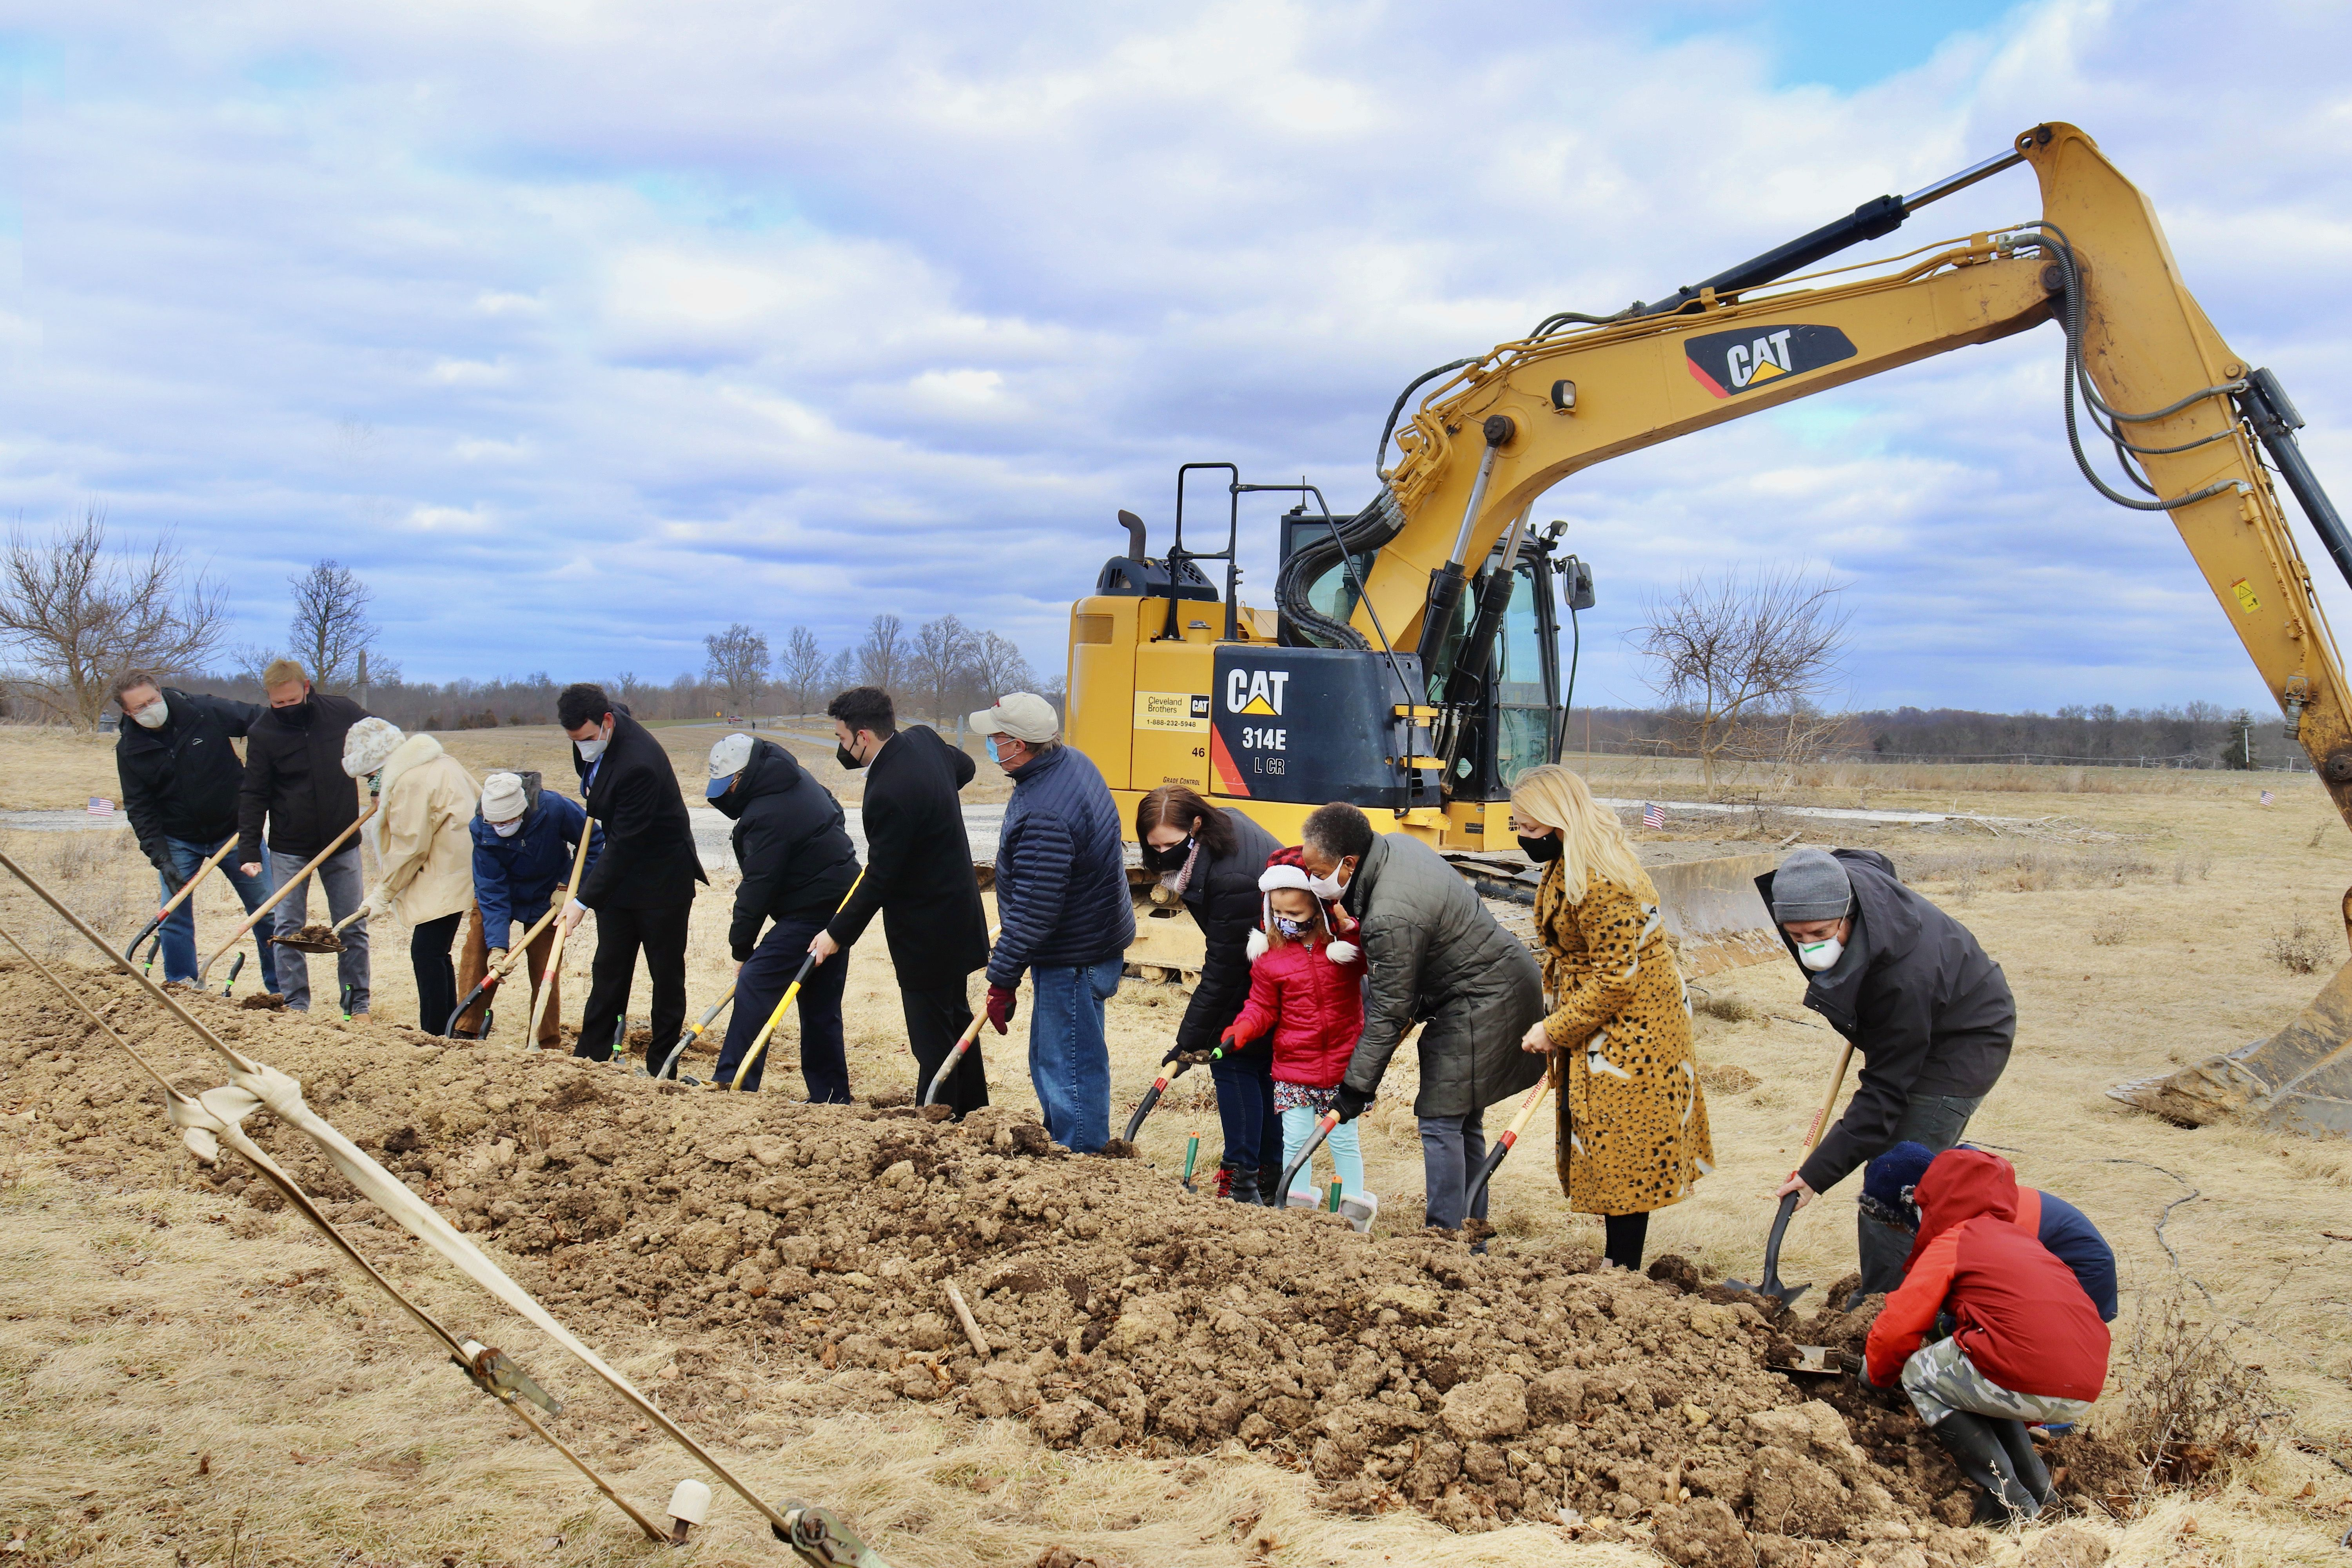 ADAMS COUNTY HISTORICAL SOCIETY BREAKS GROUND FOR NEW HOME